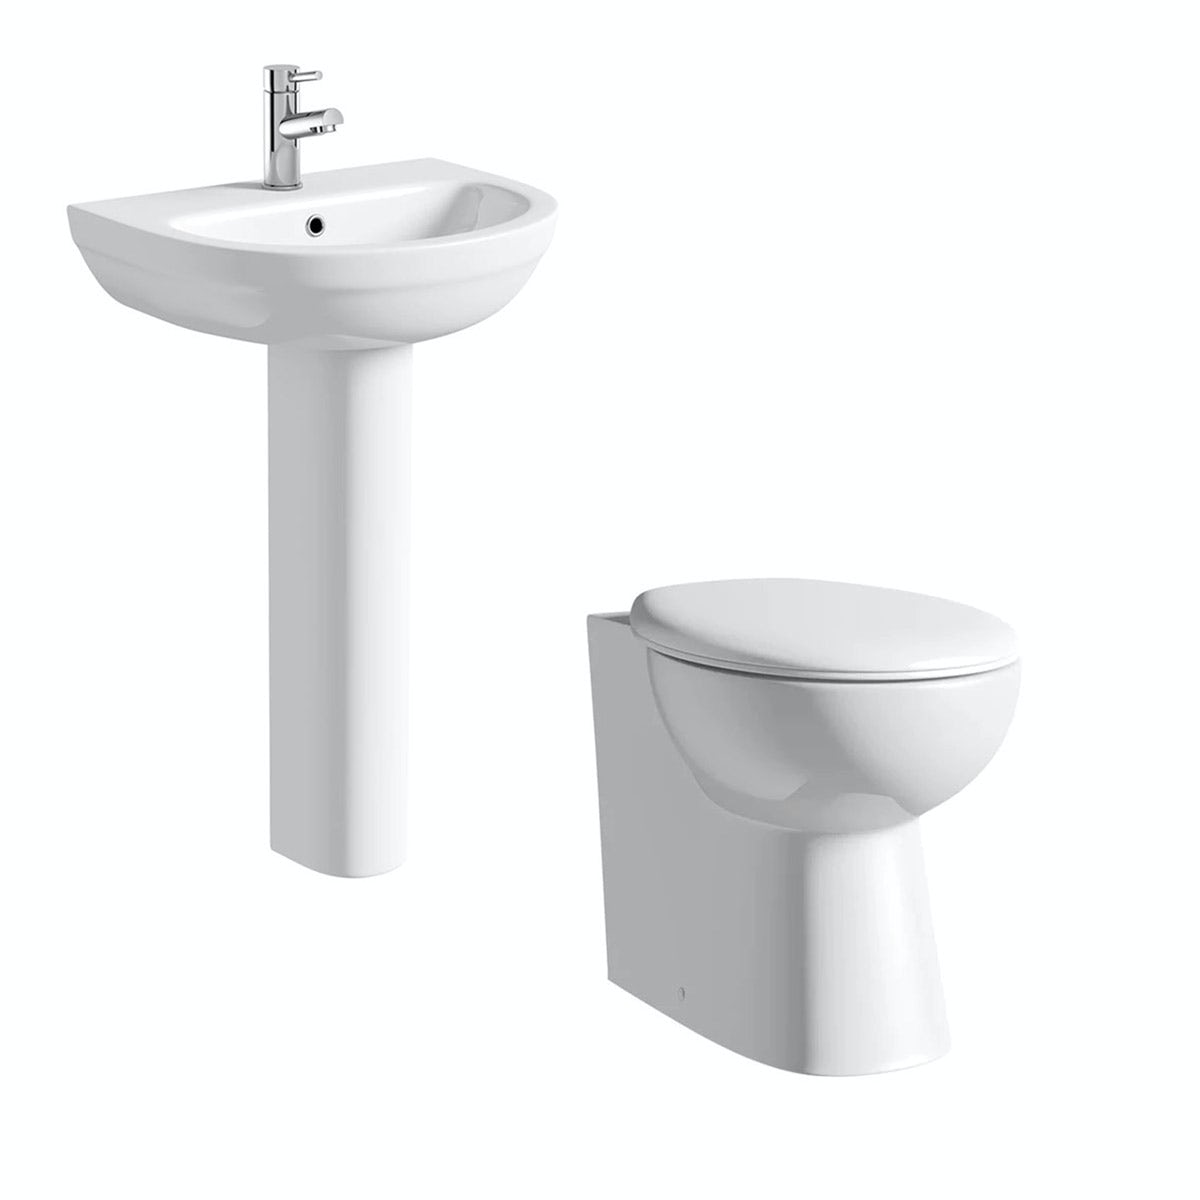 Clarity cloakroom suite with full pedestal basin 540mm